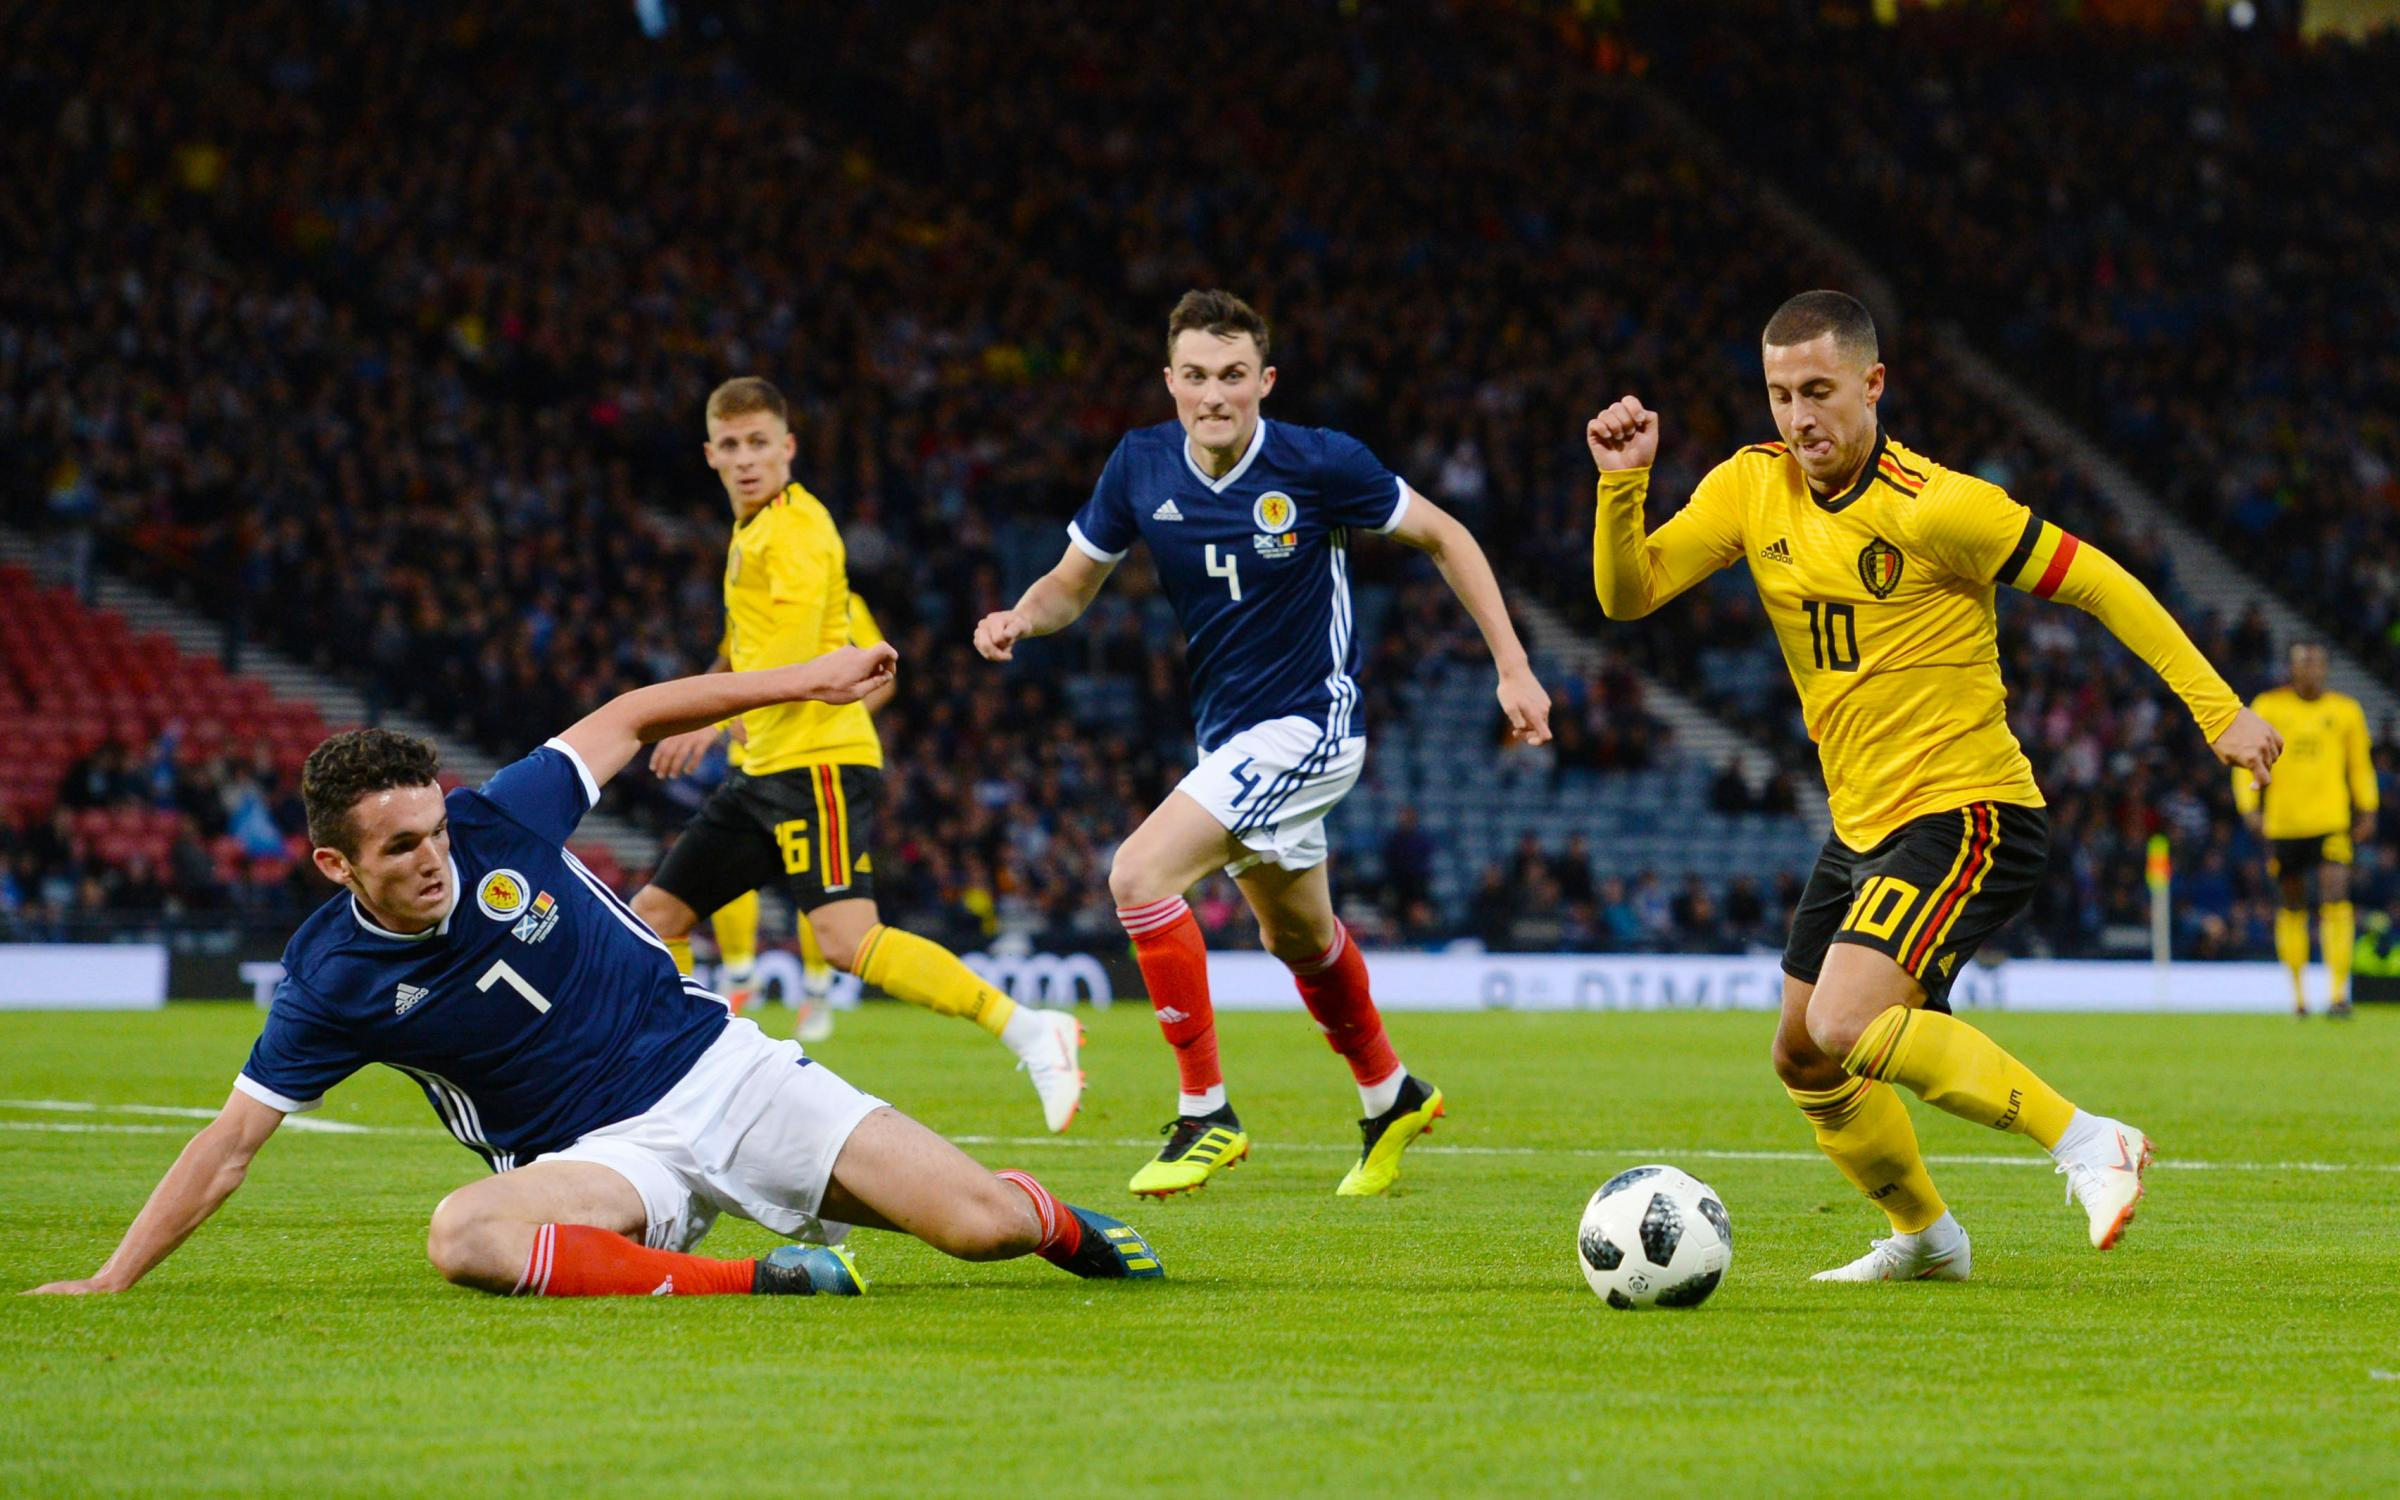 Belgium v Scotland: Kick-off time, TV details and odds